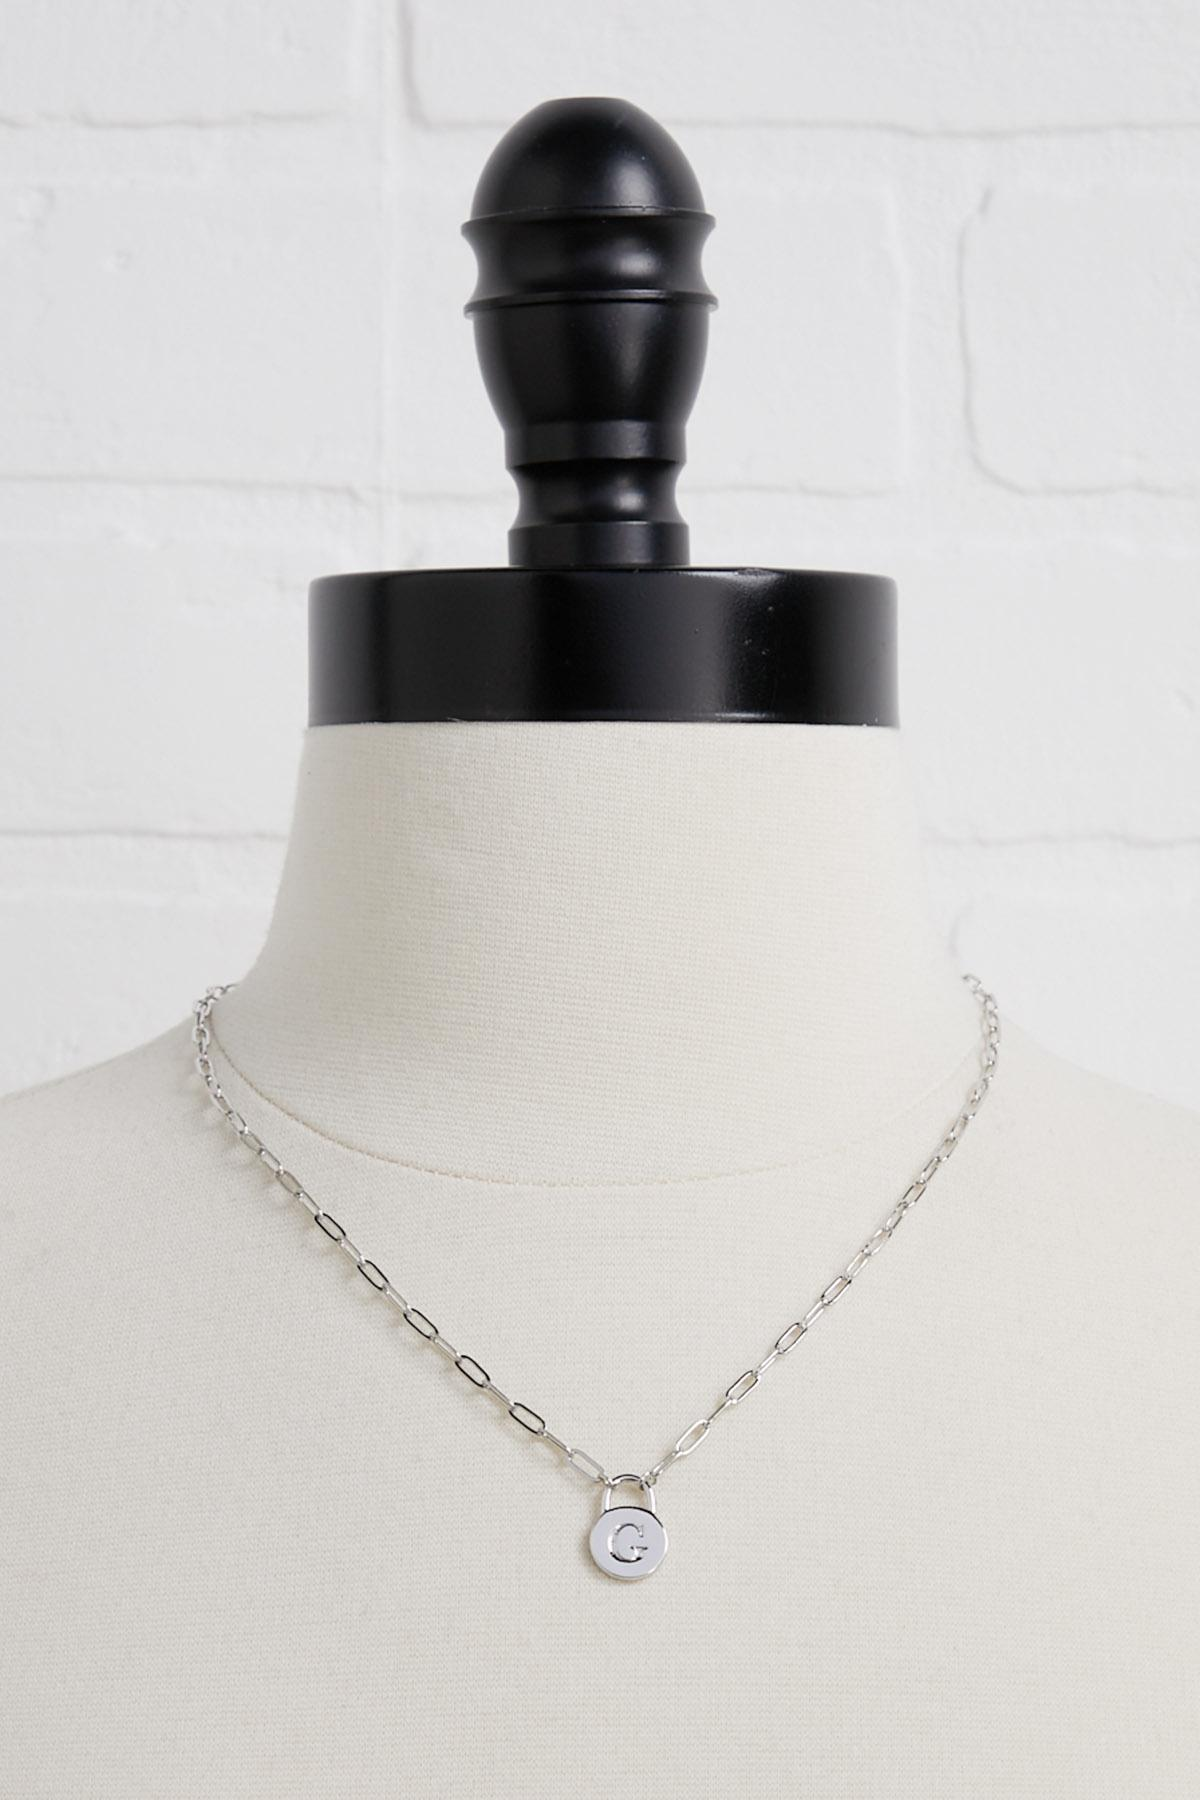 Silver G Necklace